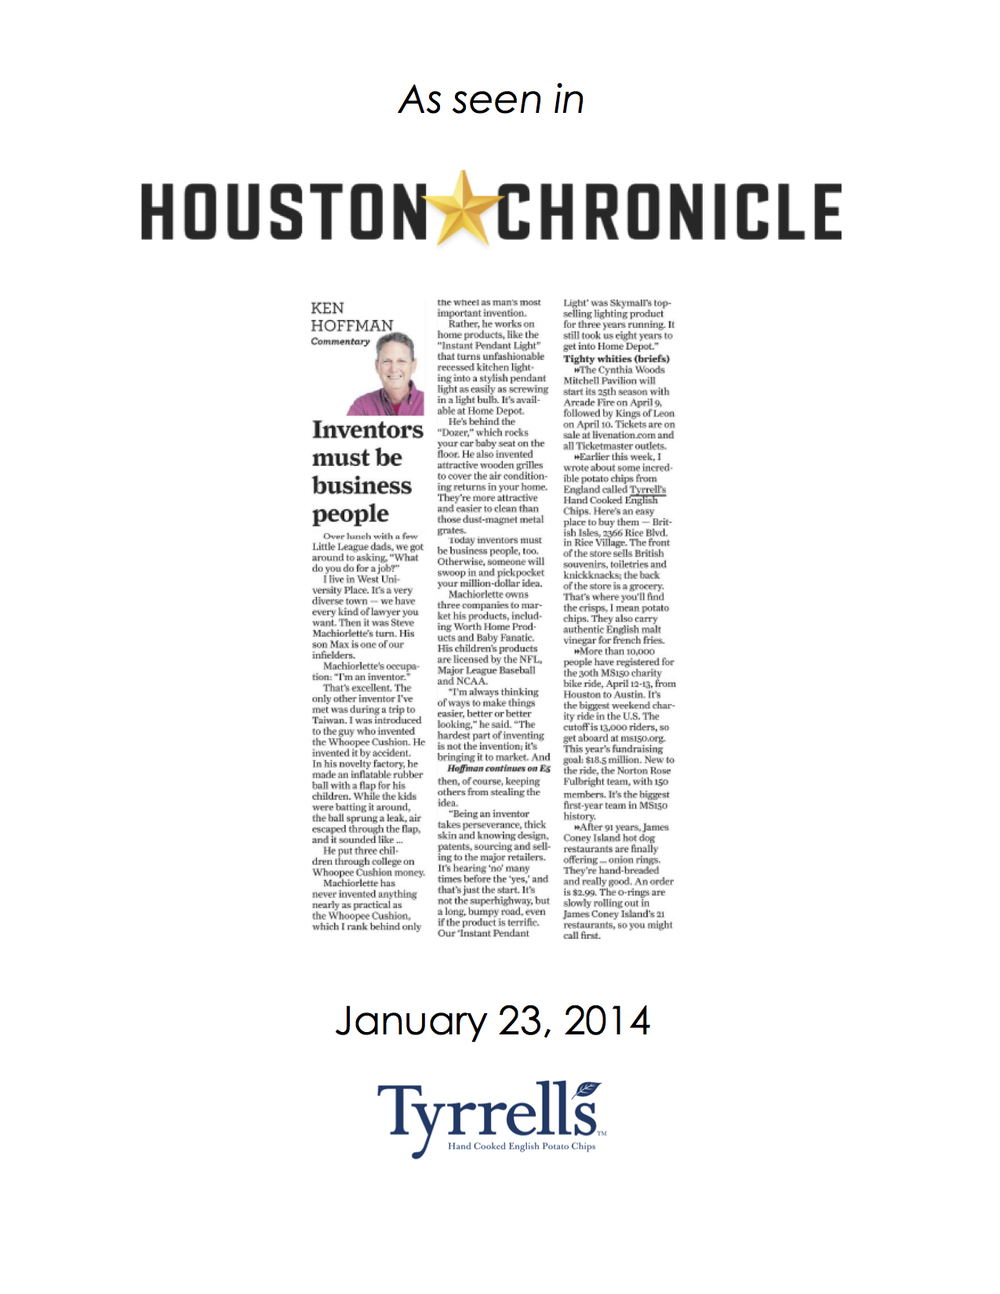 tyrrells-asseenin-houstonchronicle copy.jpg